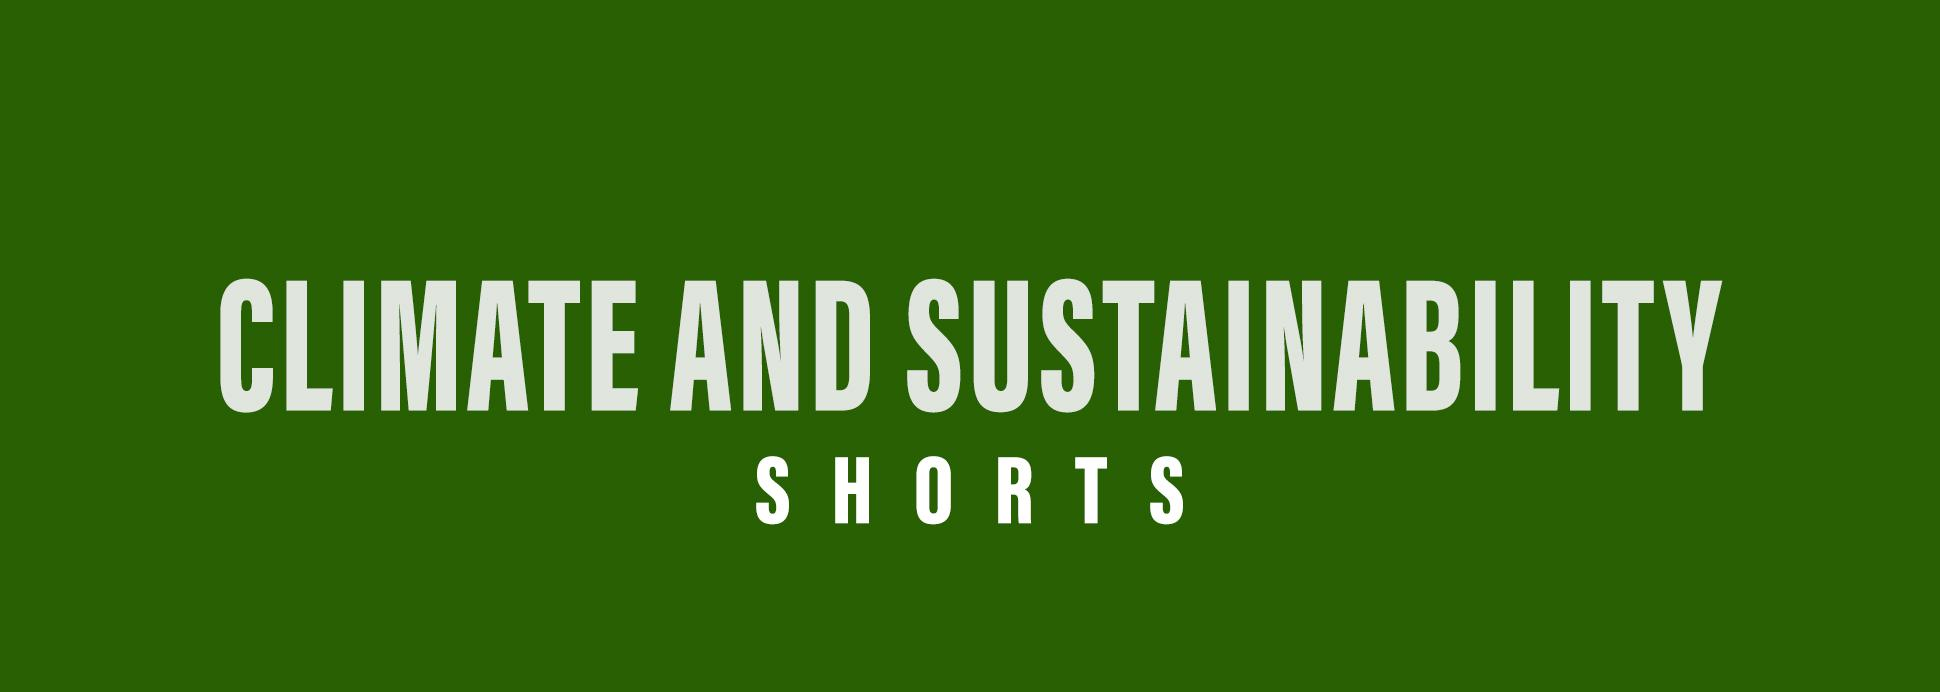 Shorts: Climate and Sustainability